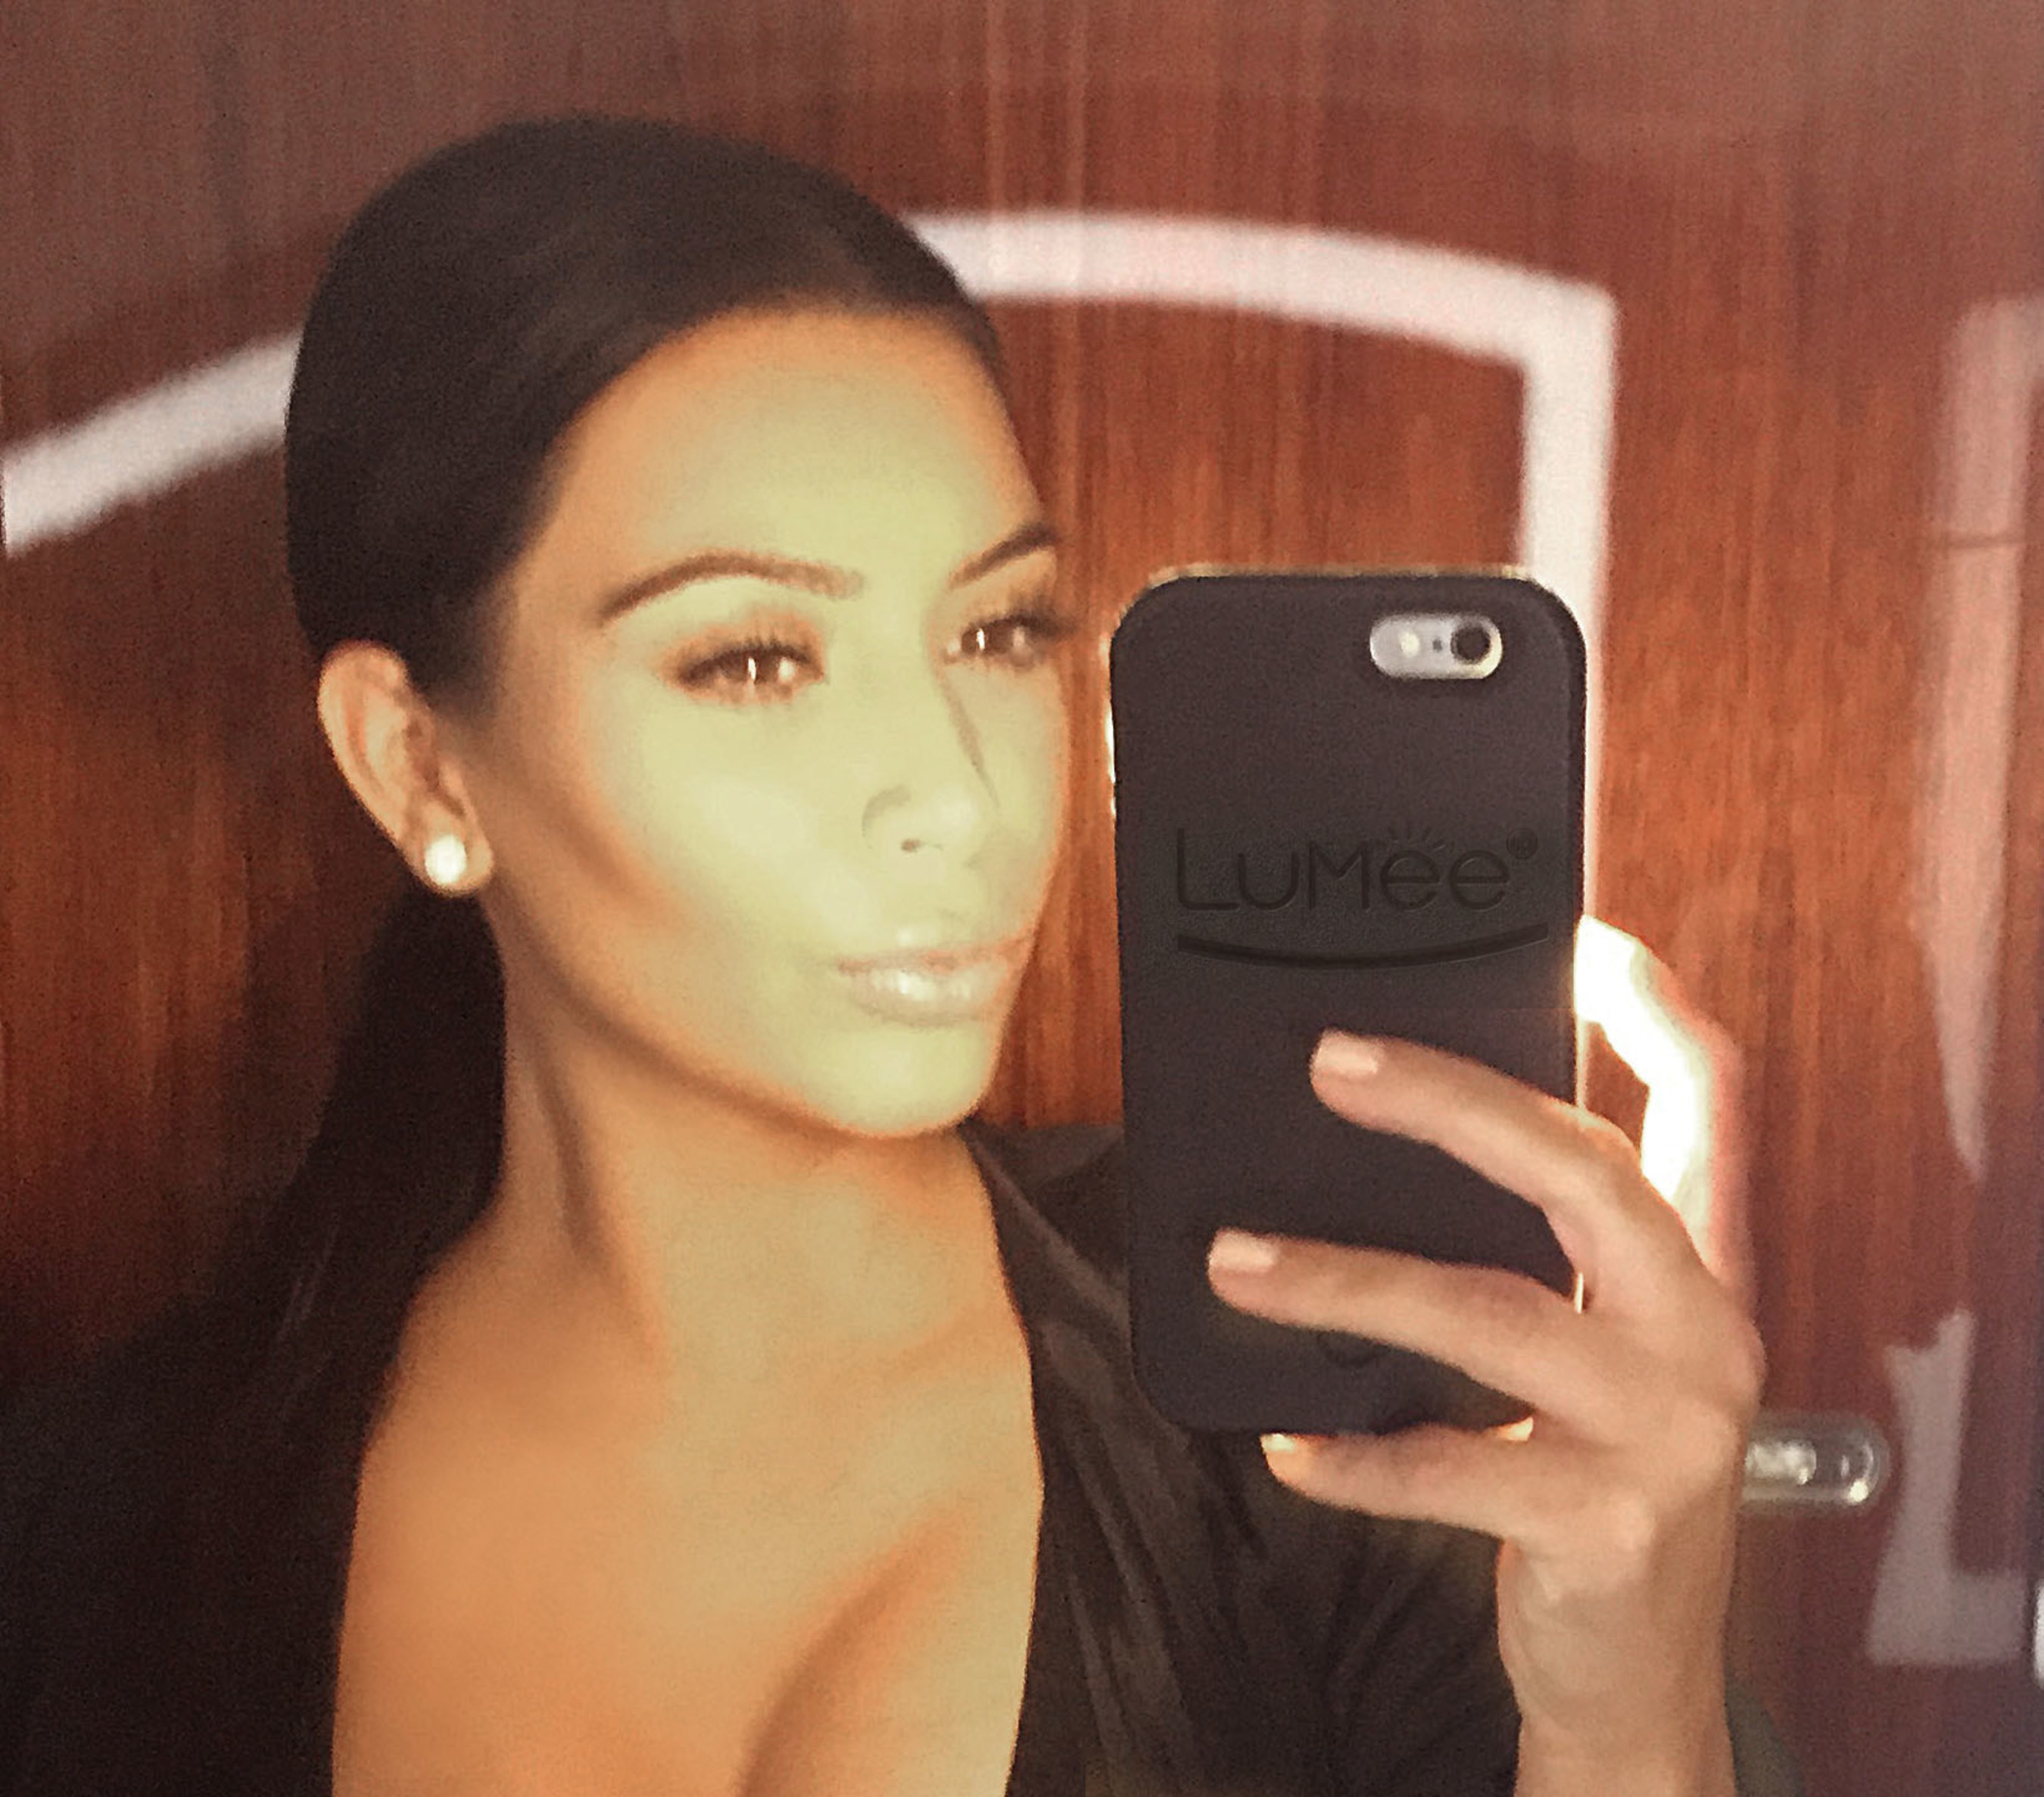 competitive price 777b6 7840d LuMee® Officially Partners with Longtime Devotee Kim Kardashian West